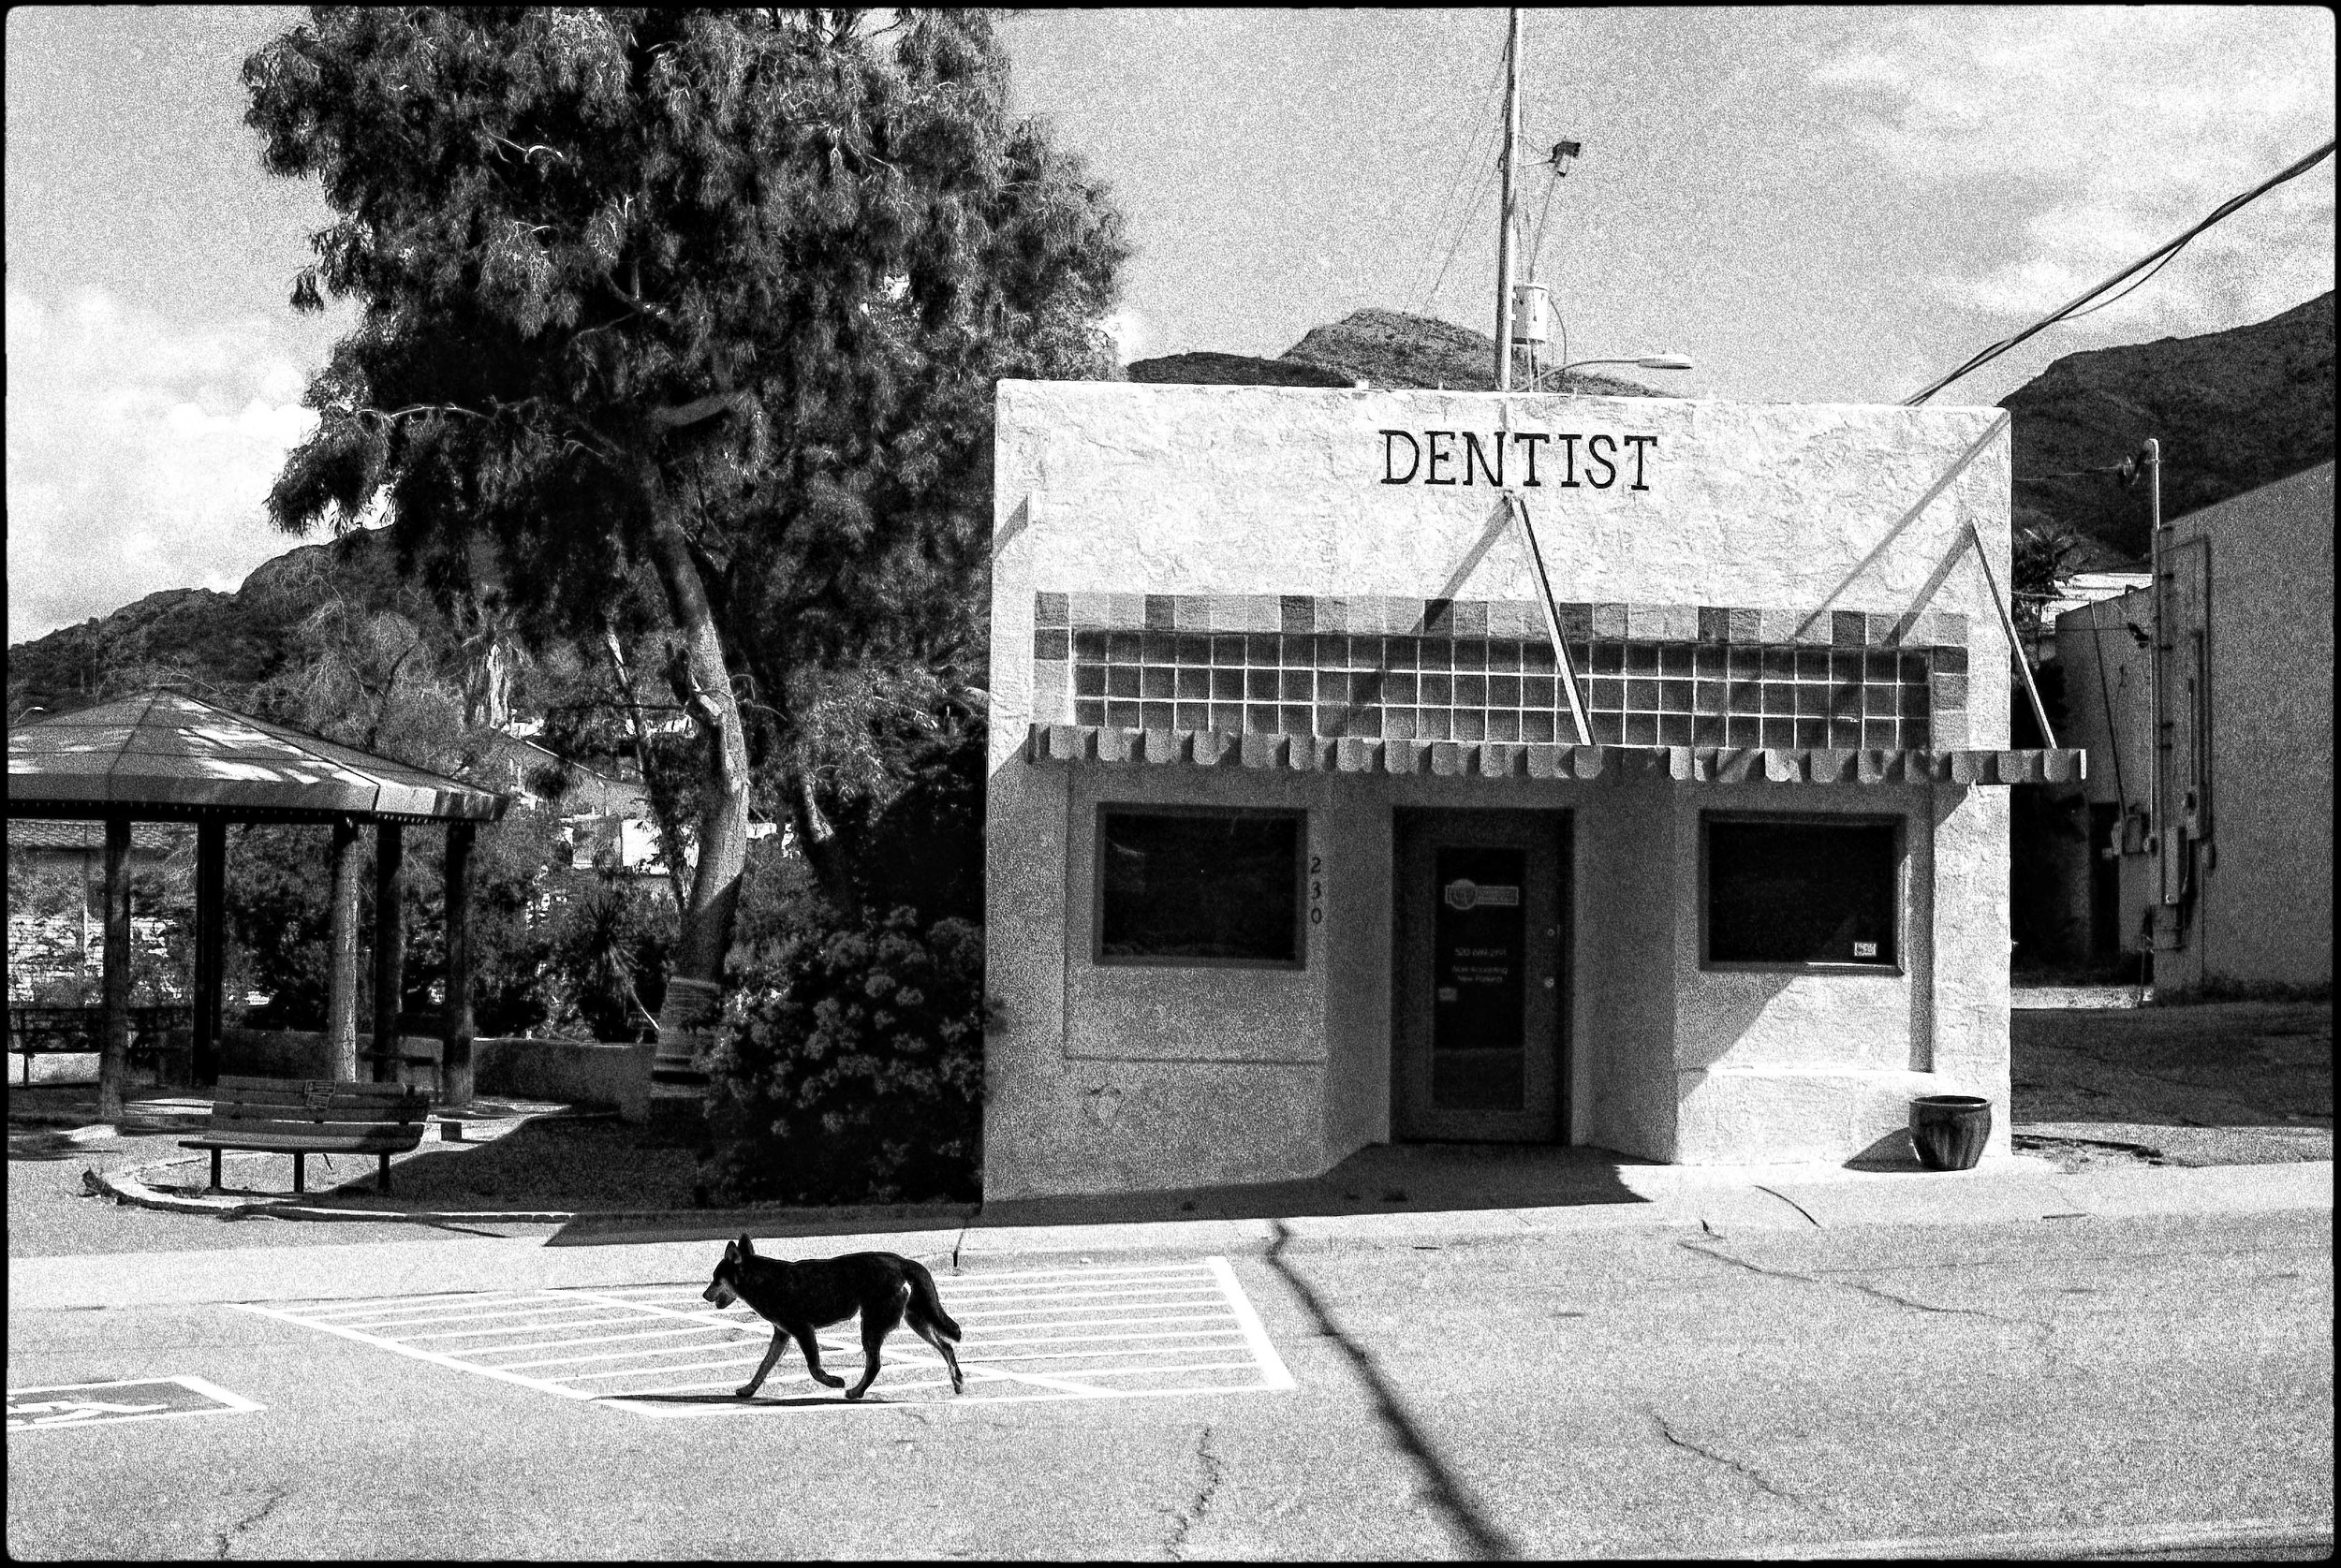 Dog & Dentist II